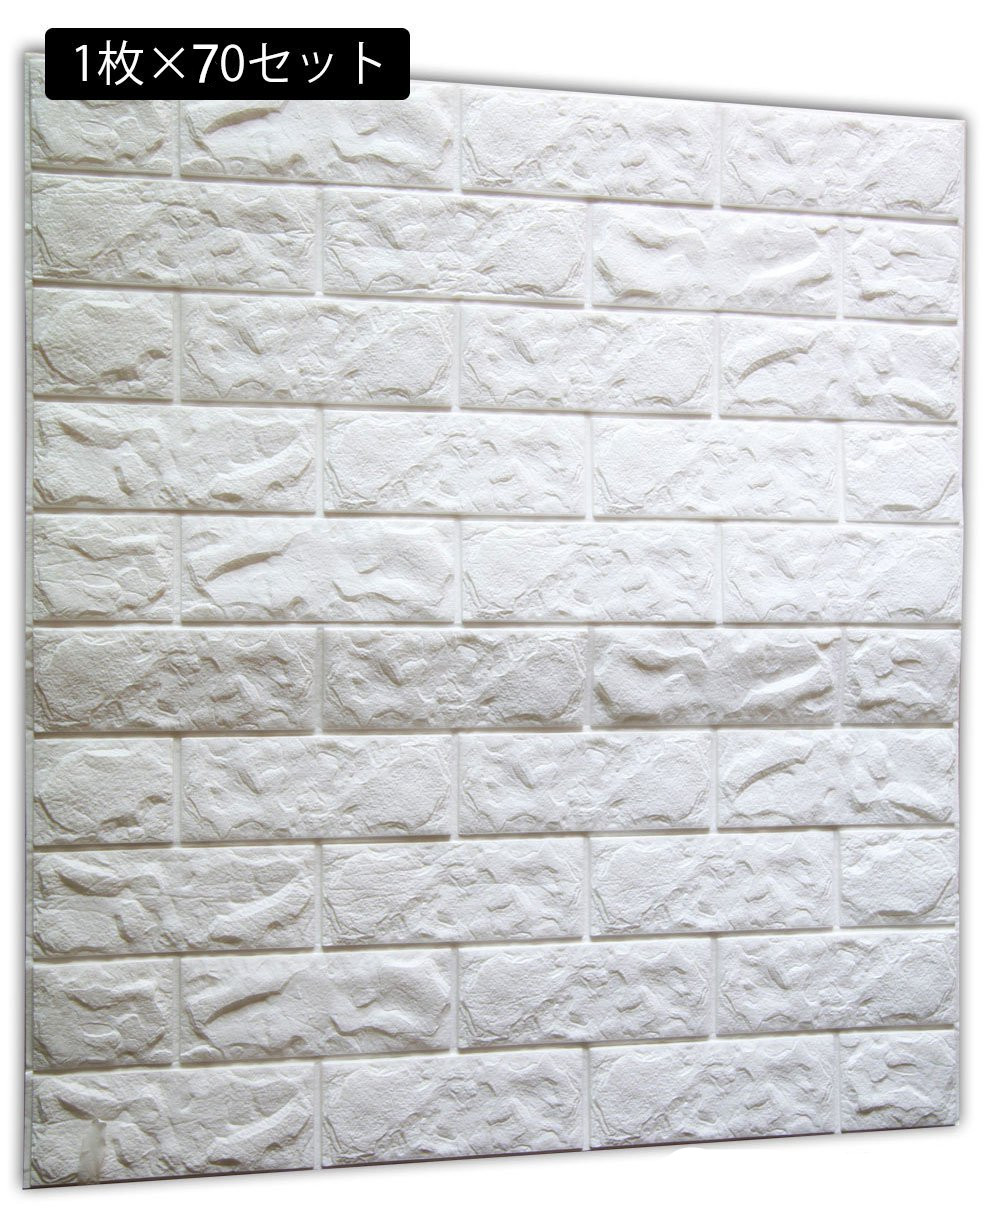 70 pcs PE Foam 3D Wallpaper DIY Wall Stickers Wall Decor Embossed Brick Stone Brick pattern 3D Textured PE Foam Wallpaper Wall блузка женская concept club elros цвет синий 10200270160 500 размер l 48